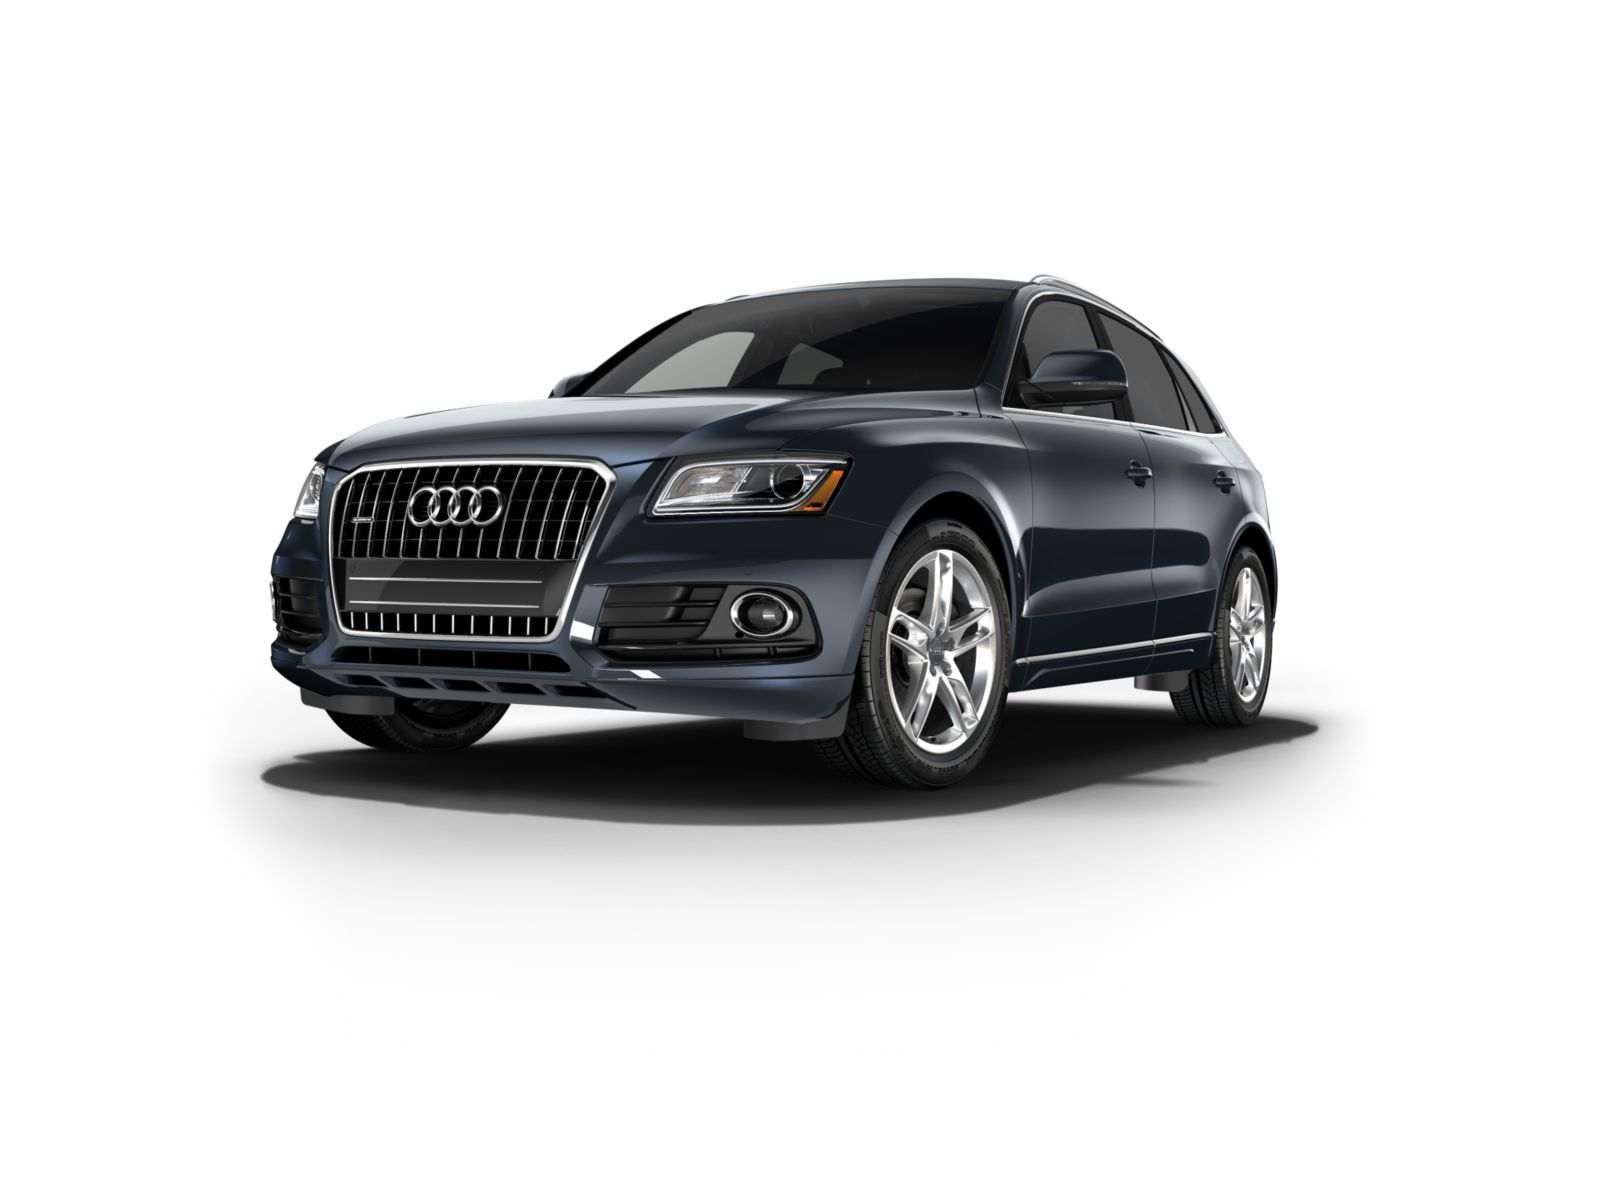 Build Audi Q5 >> Graduation Present To Myself In 2 Years Audi Q5 Lust List Audi